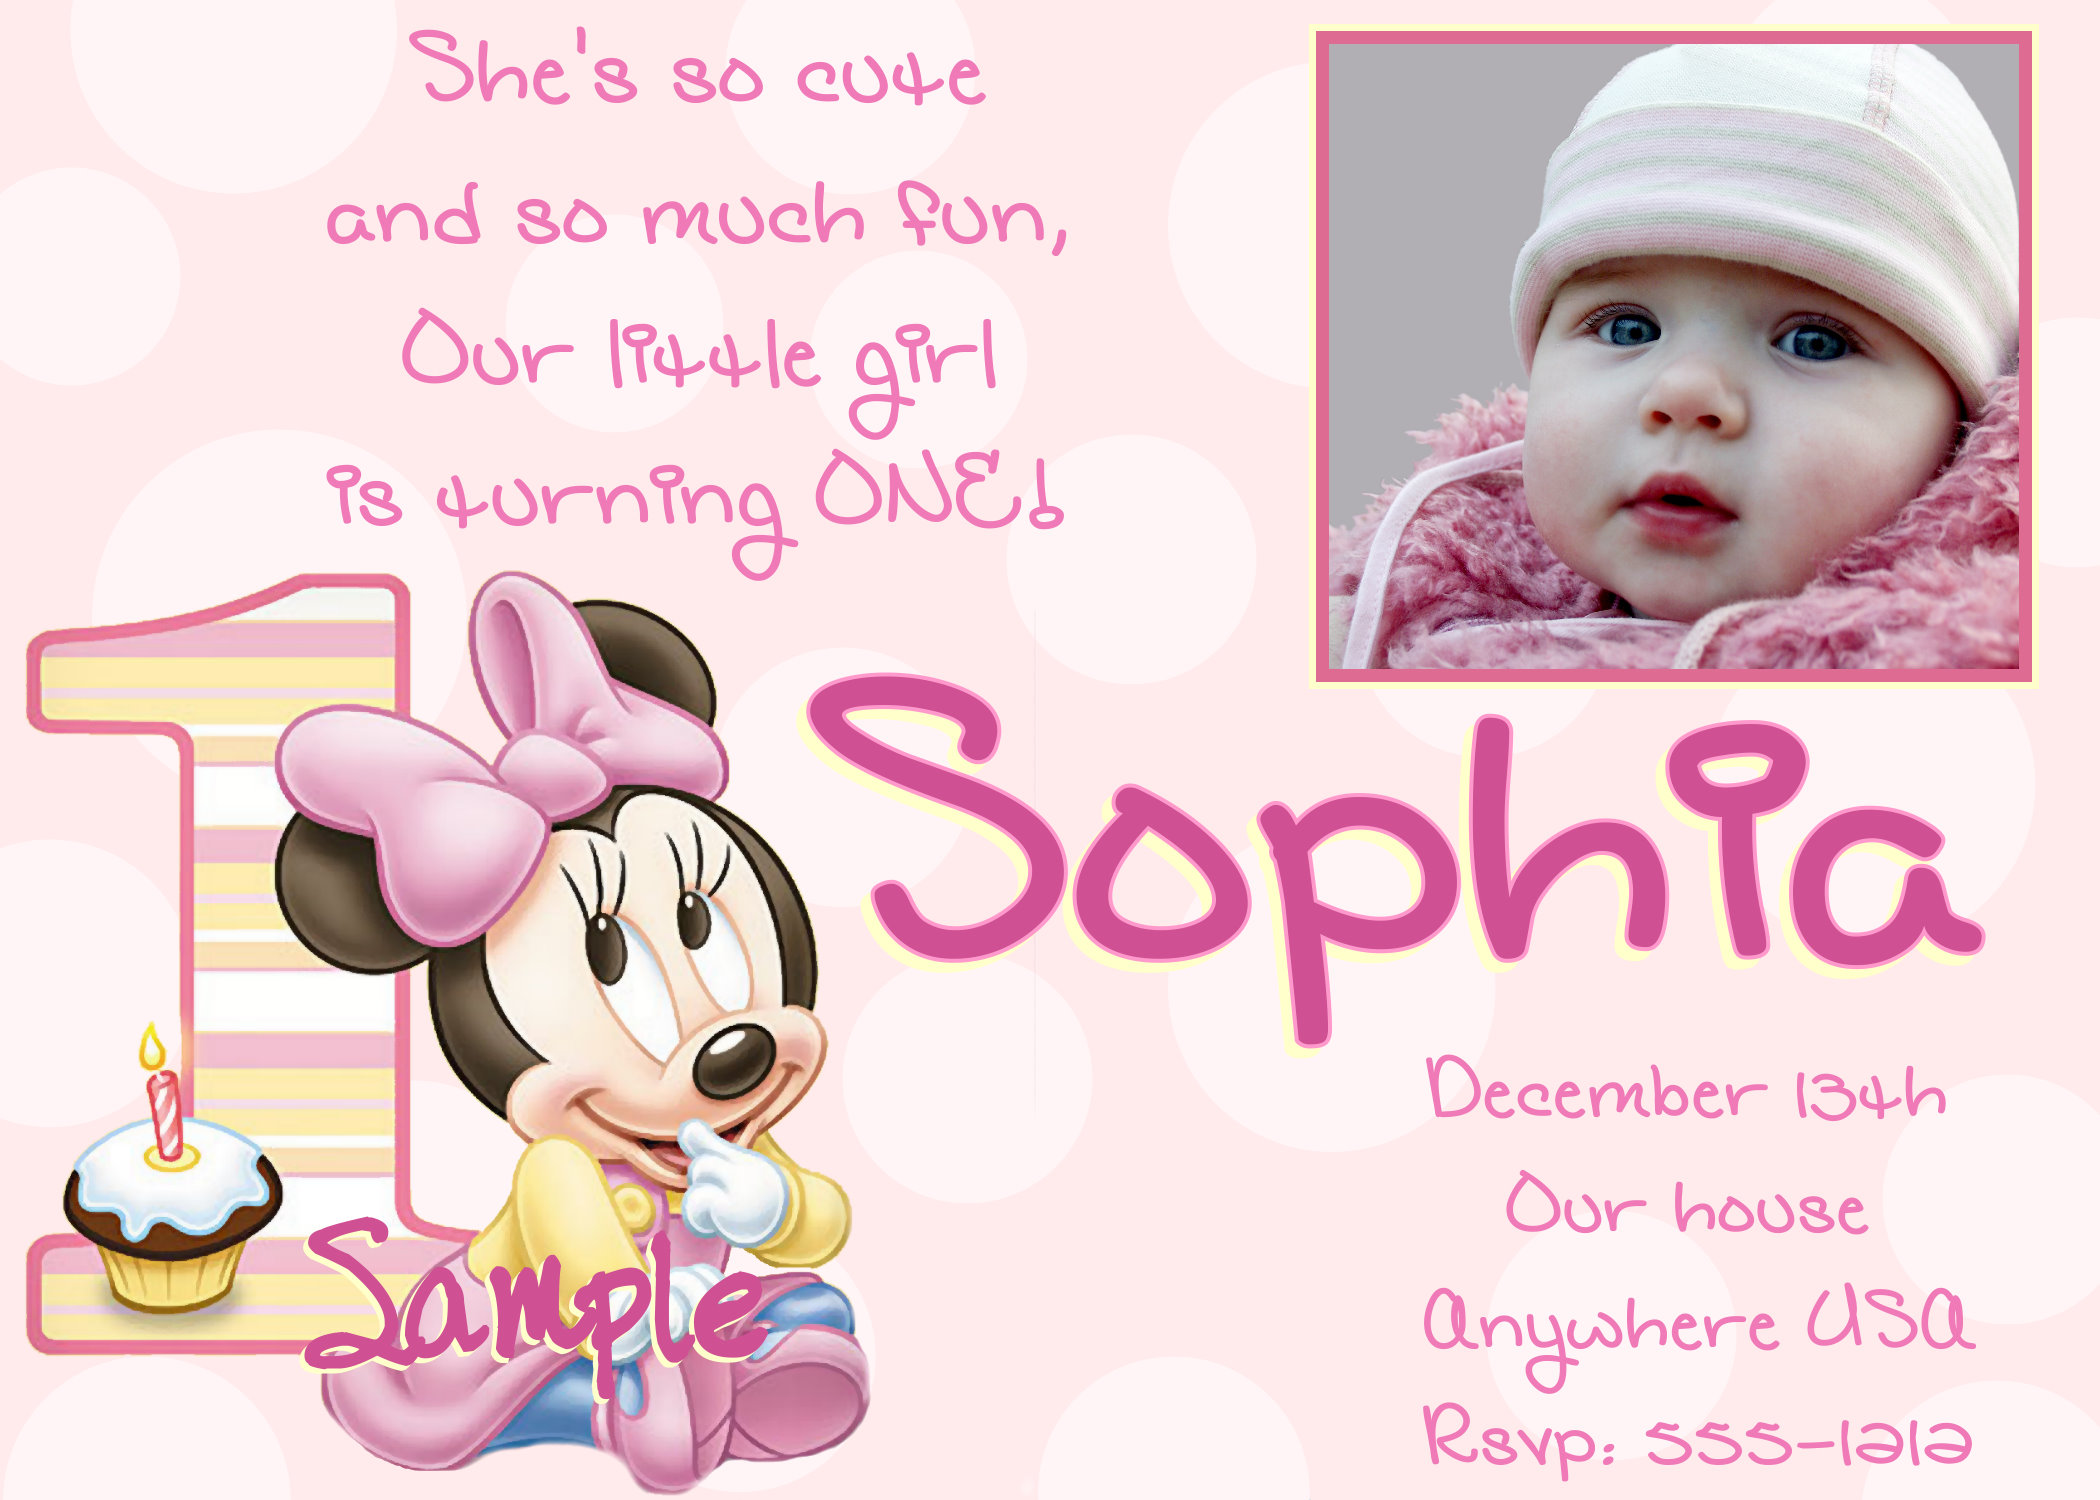 baby girl birthday invitation card design ; Minnie-Mouse-1St-Birthday-Invitations-Templates-for-a-stunning-birthday-Invitation-design-with-stunning-layout-3